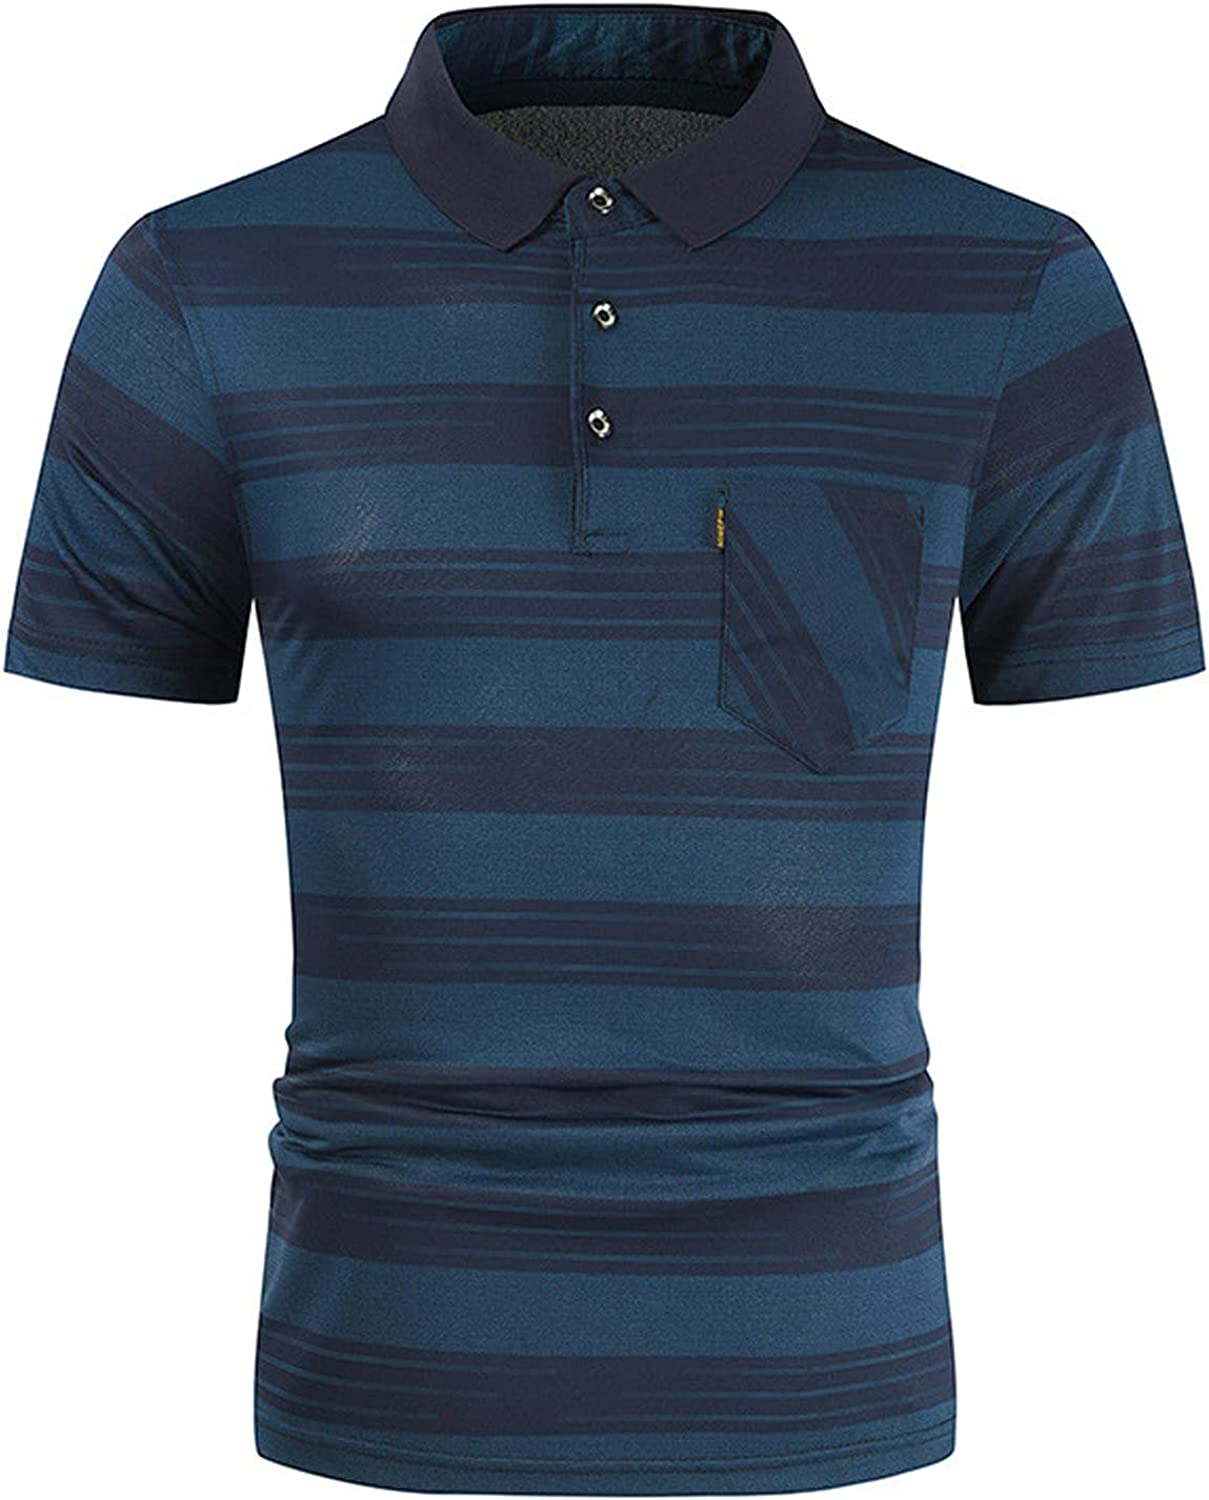 FUNEY Polo Shirts for Men Patchwork Striped Button Short-Sleeve Seattle Mall Sale special price